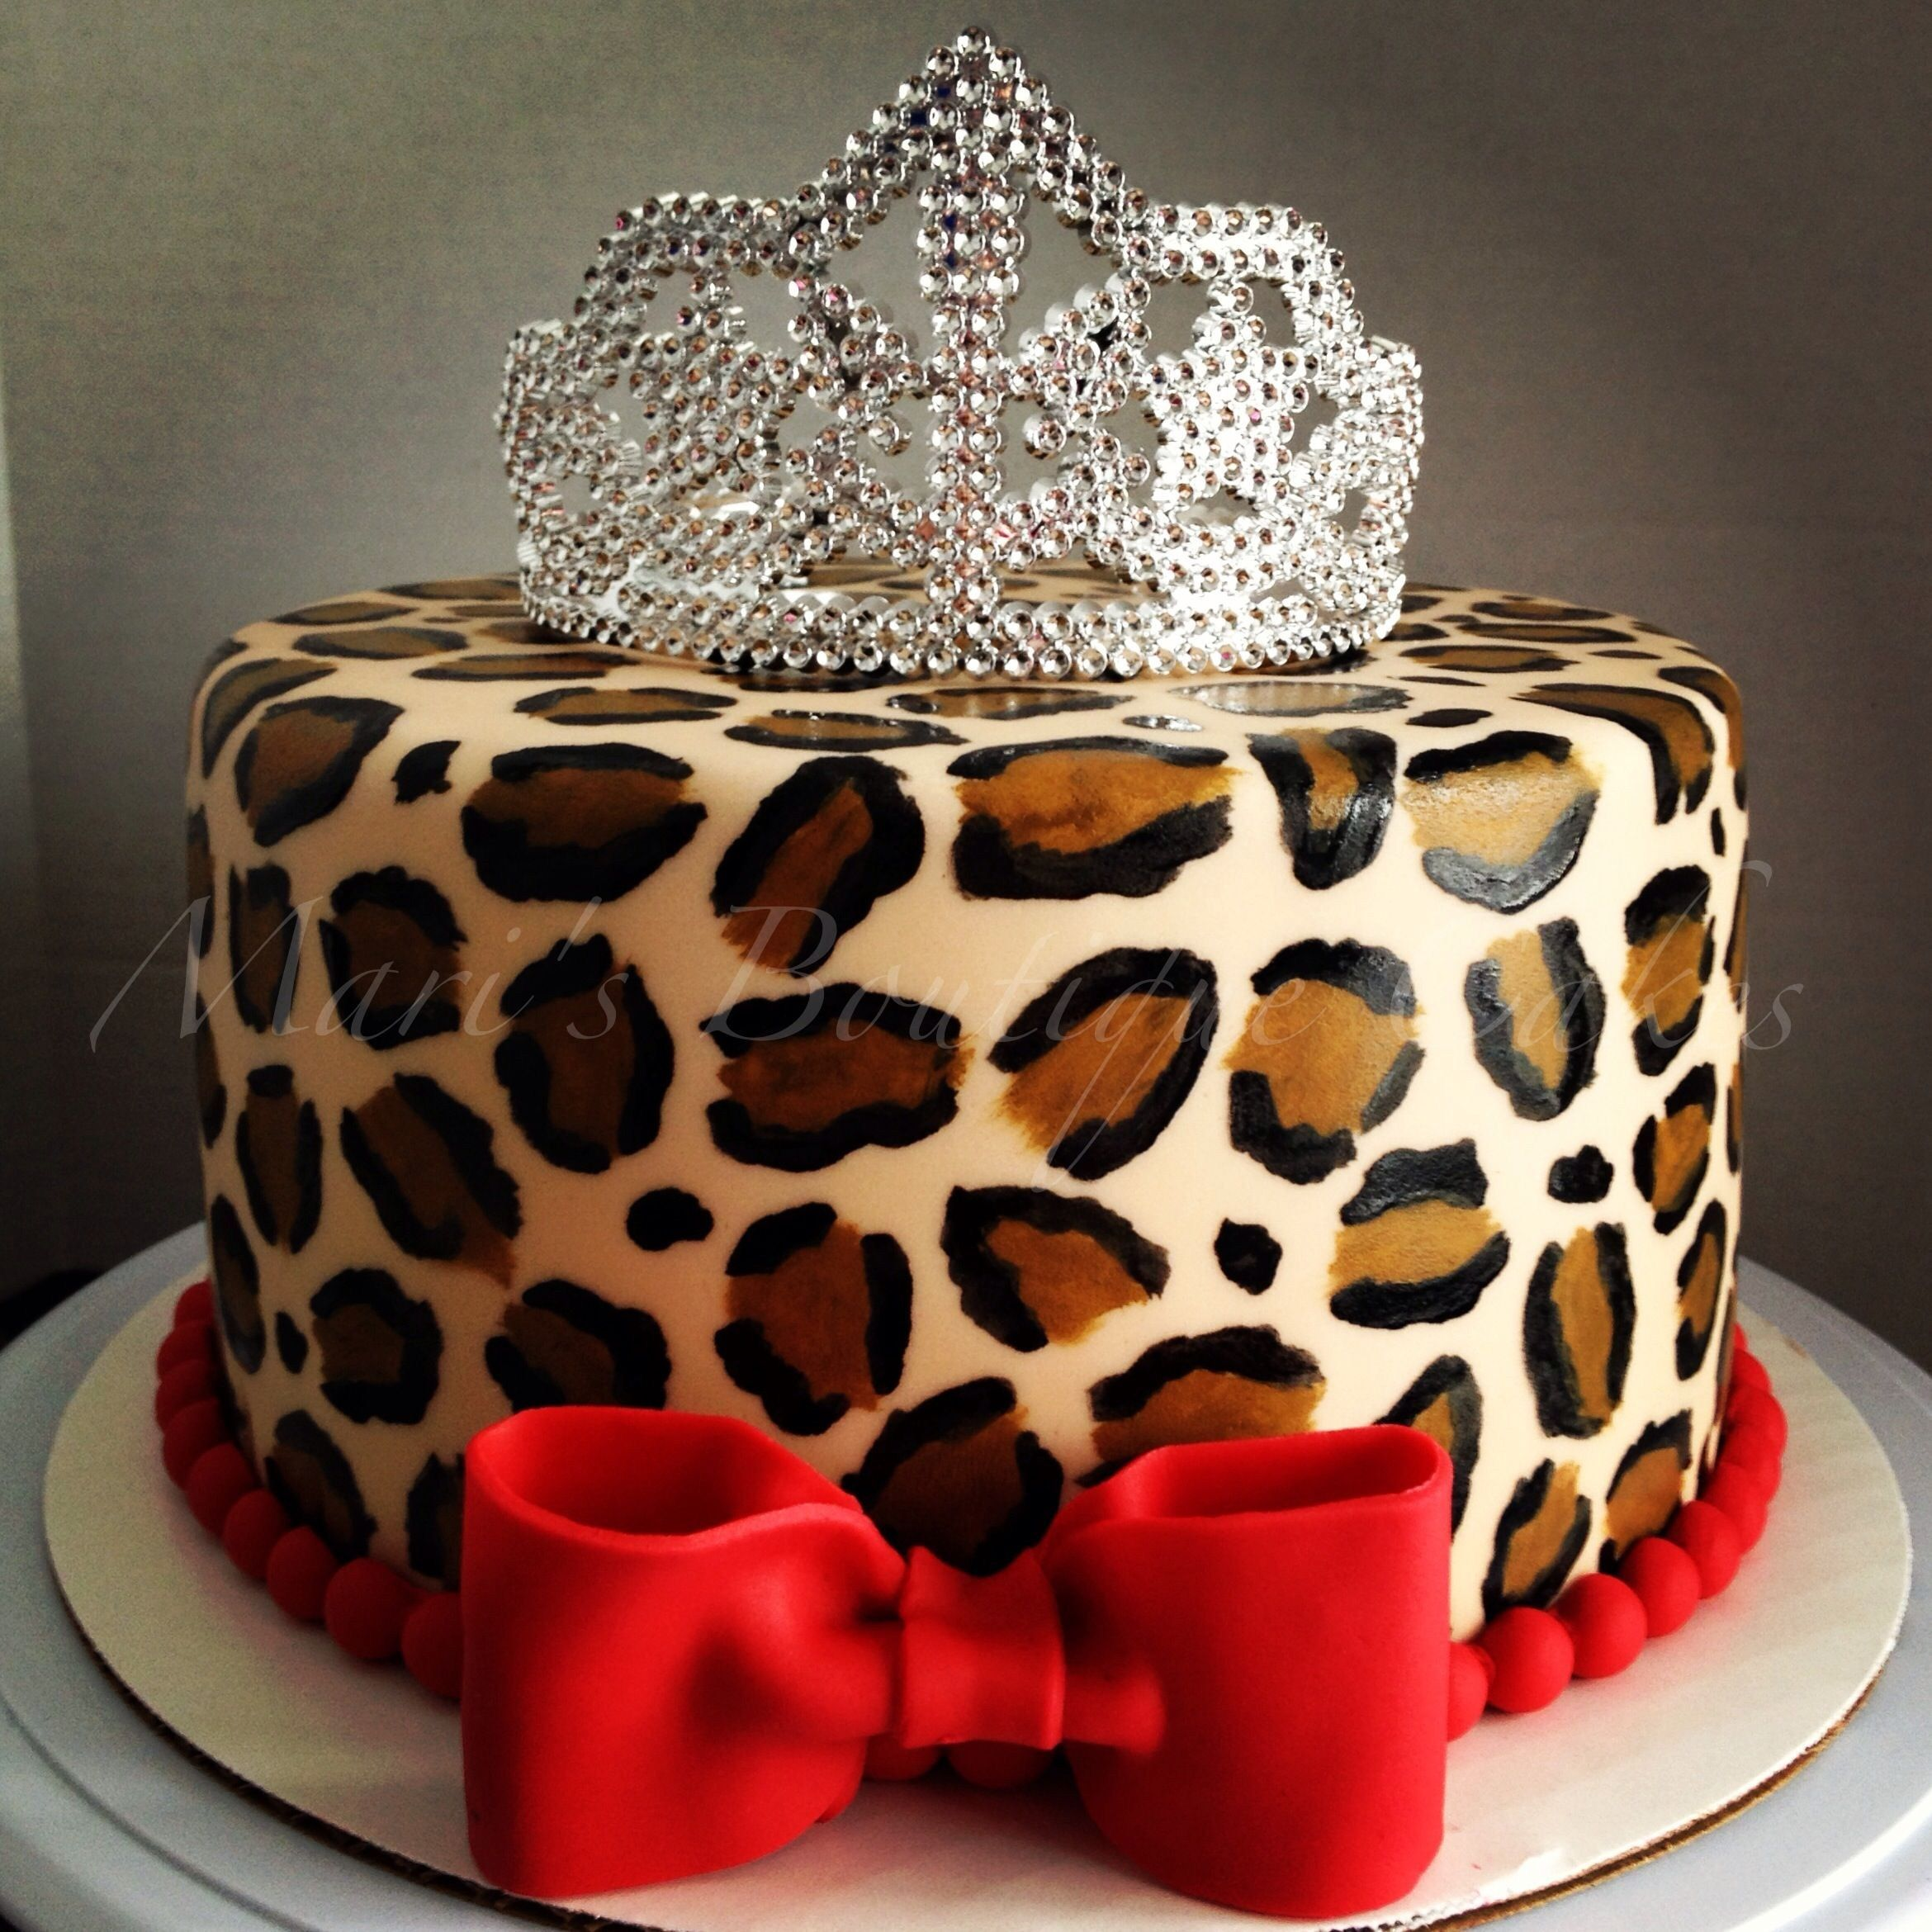 Astonishing 21 Best Image Of Leopard Birthday Cake With Images Leopard Funny Birthday Cards Online Aeocydamsfinfo